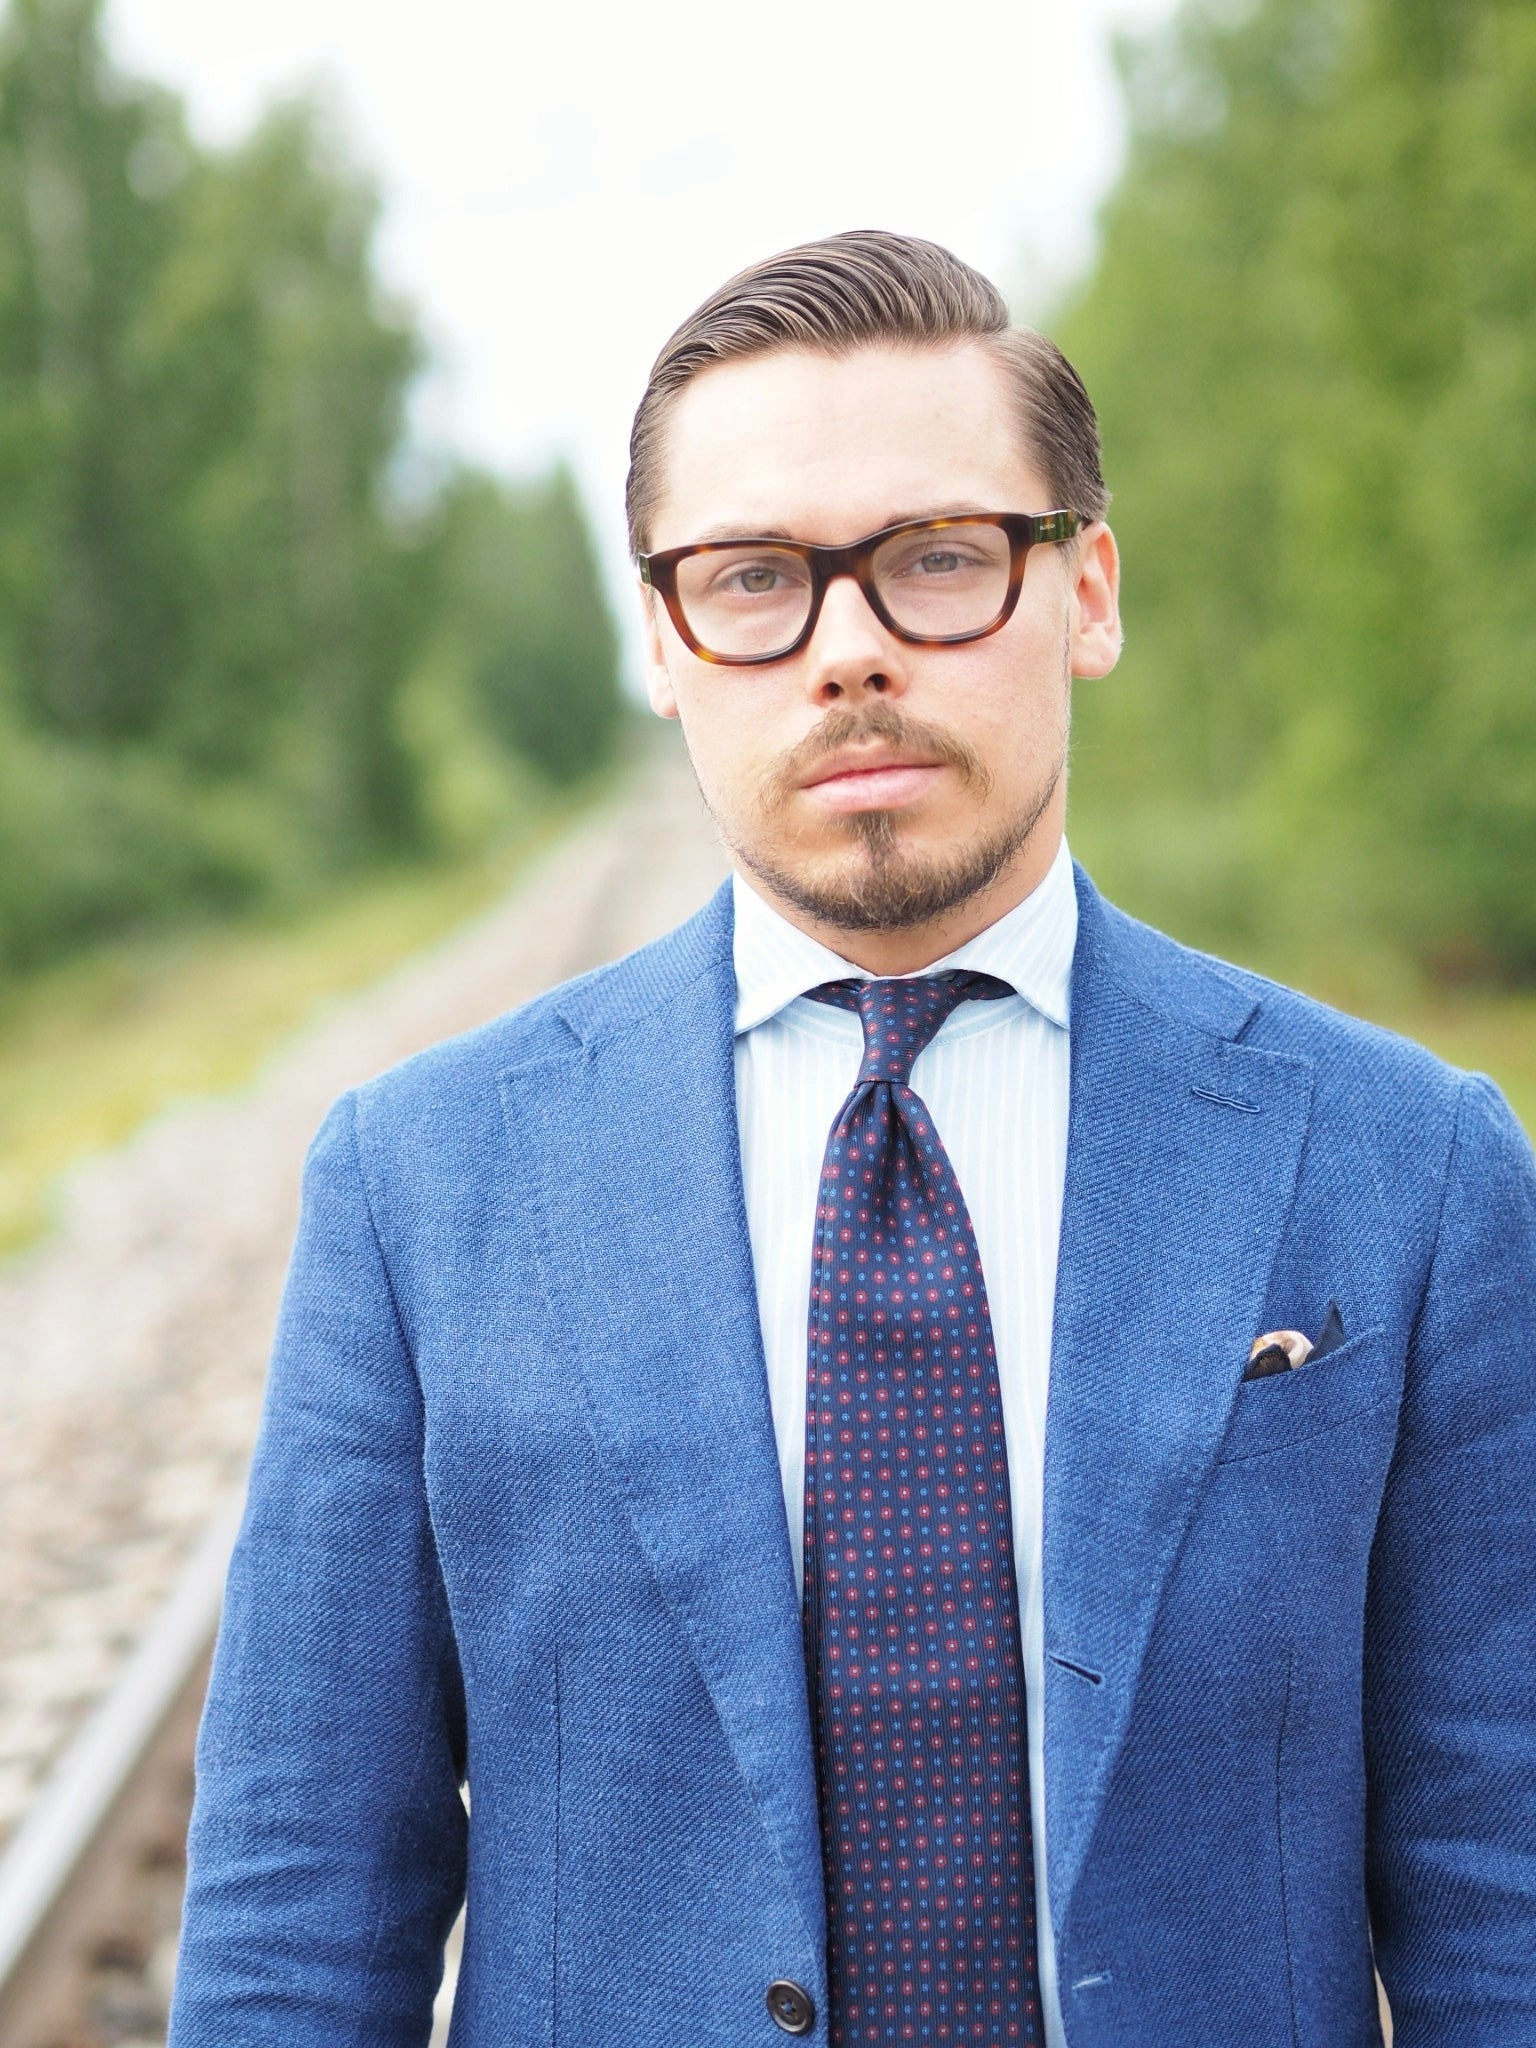 Blue suit jacket as a sport coat - portrait for business wear